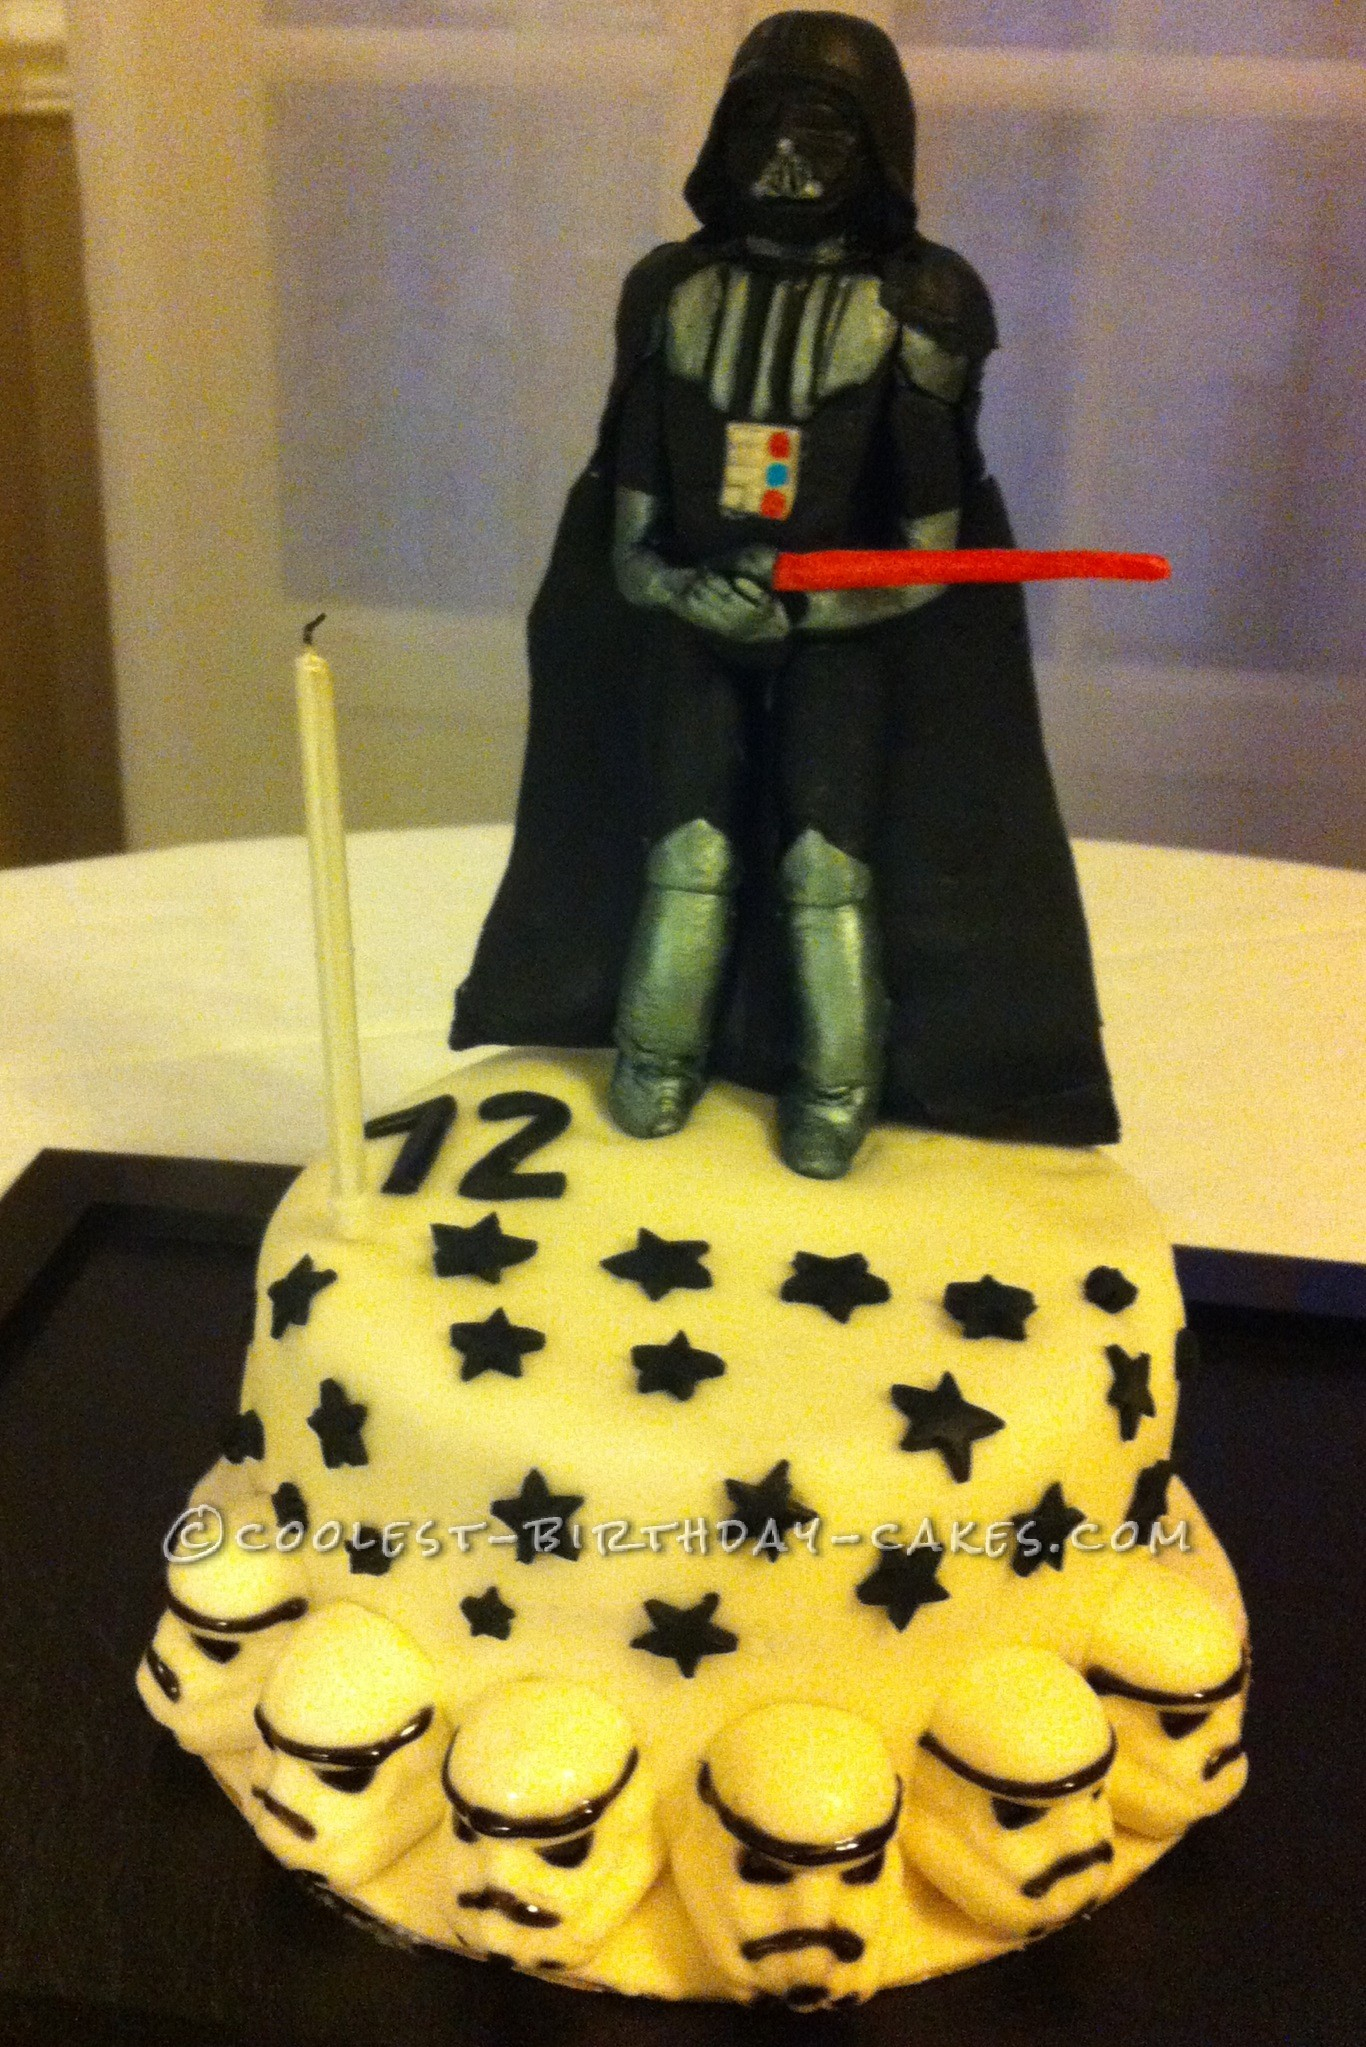 Darth Vader Birthday Cake Coolest Darth Vader Birthday Cake